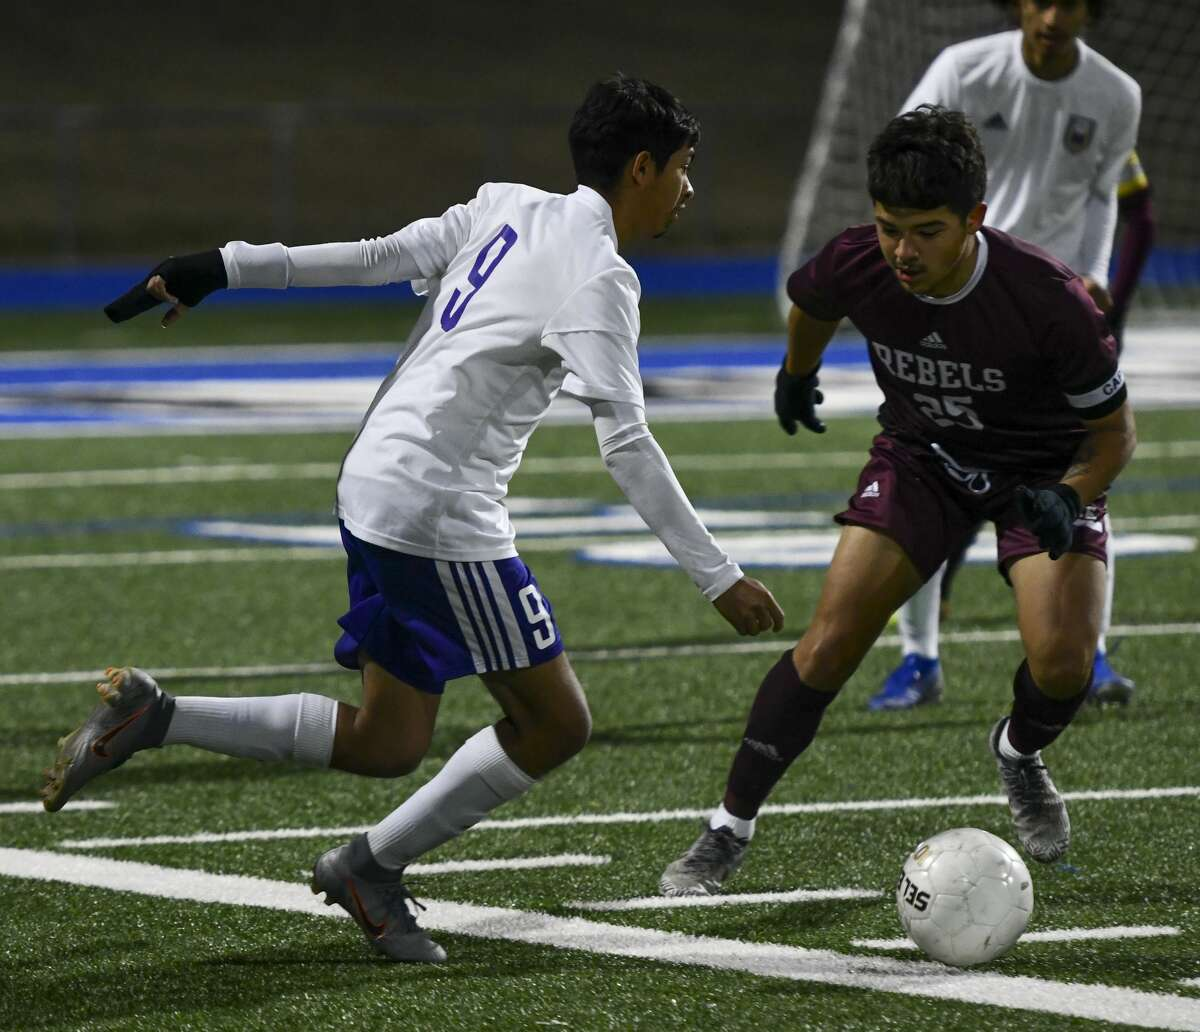 Midland High's Jordan Alfaro (9) looks to pass the ball as Lee's Marco Jurado attempts to steal the ball Friday, Feb. 14, 2020 at Grande Communications Stadium.